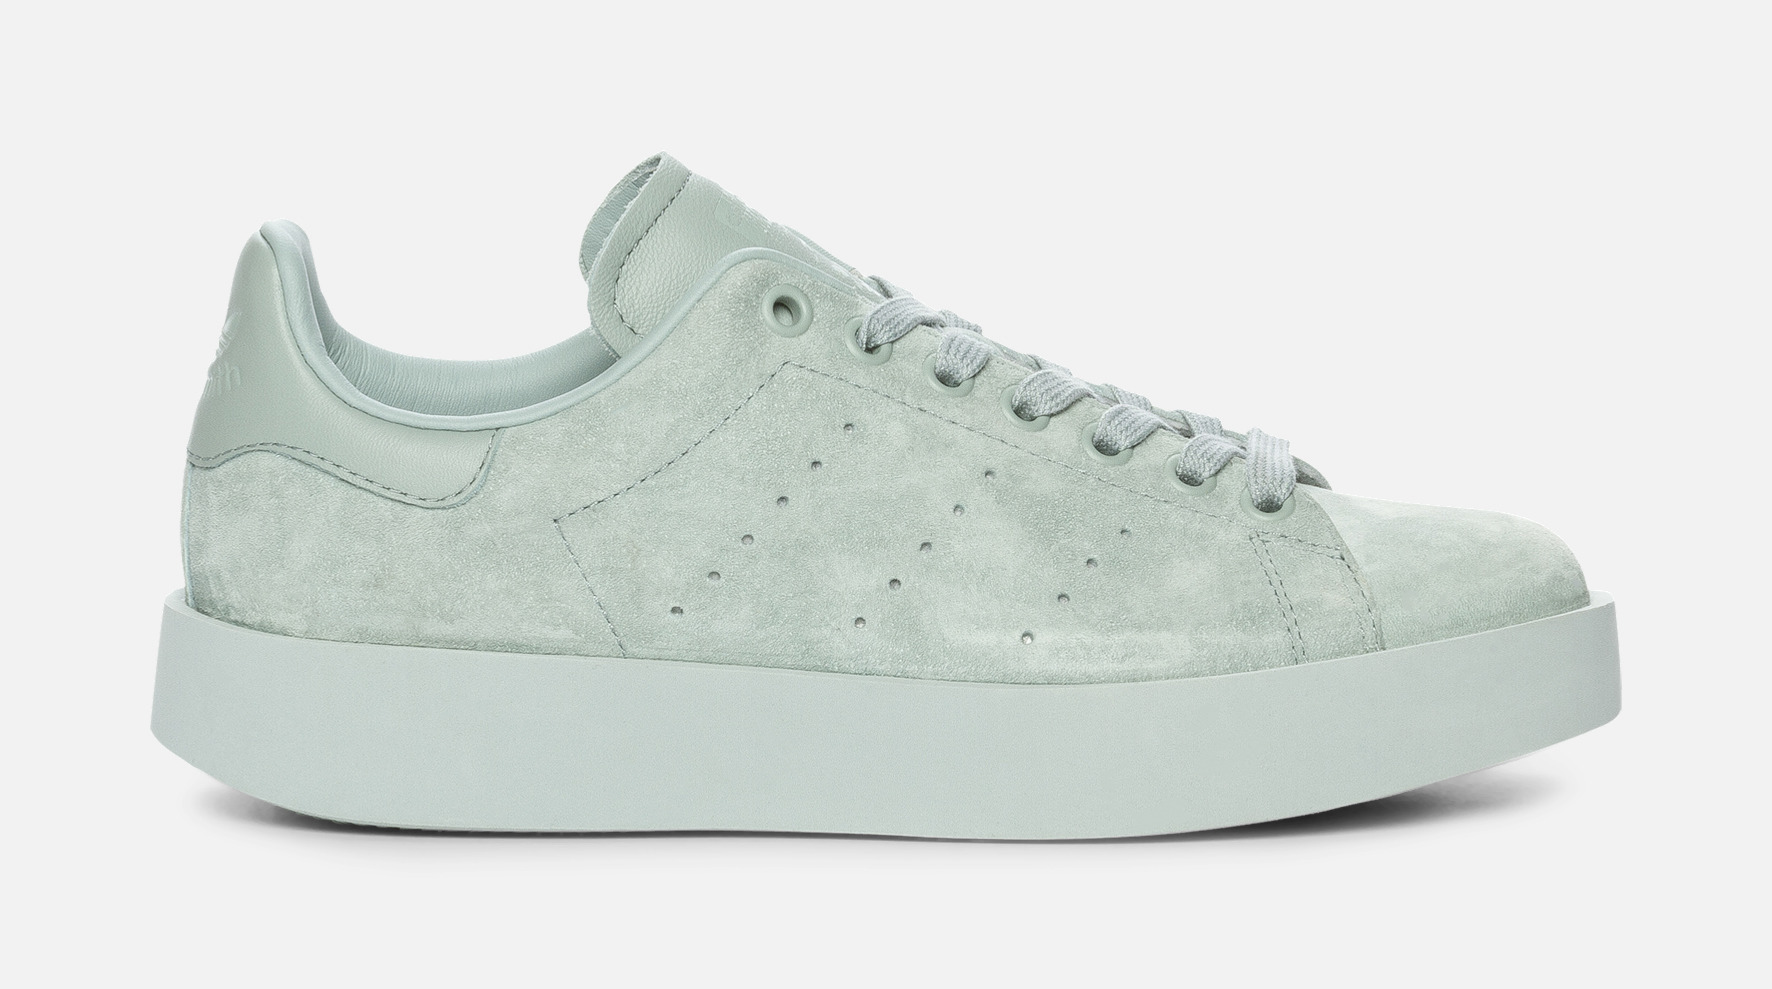 low priced aeb38 bf5d9 ... cheap adidas stan smith bold w grønn 309727 feetfirst.no 12296 7a498